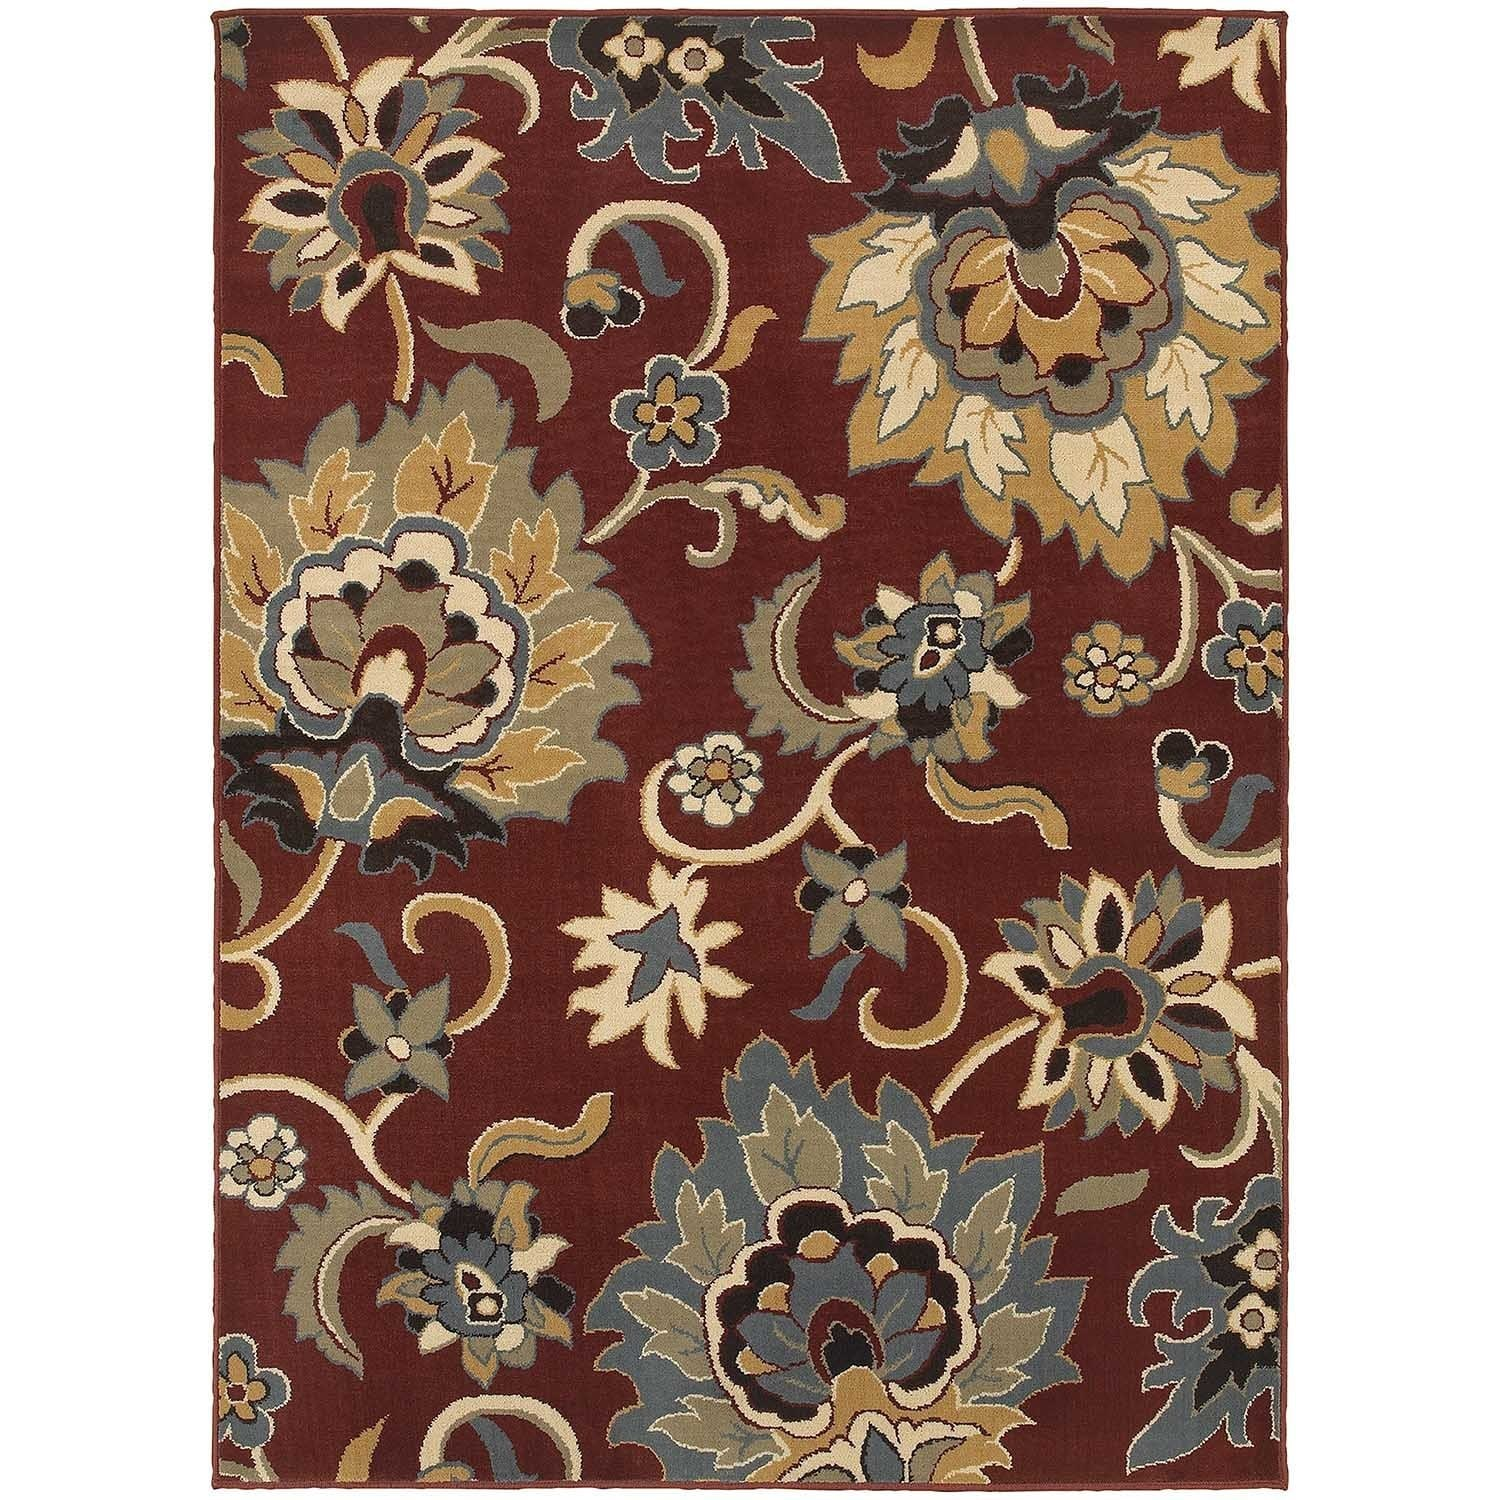 Large Scale Floral Red/ Gold Rug (67 x 93) - 67 x 93 (67 x 93 - Red/Gold)